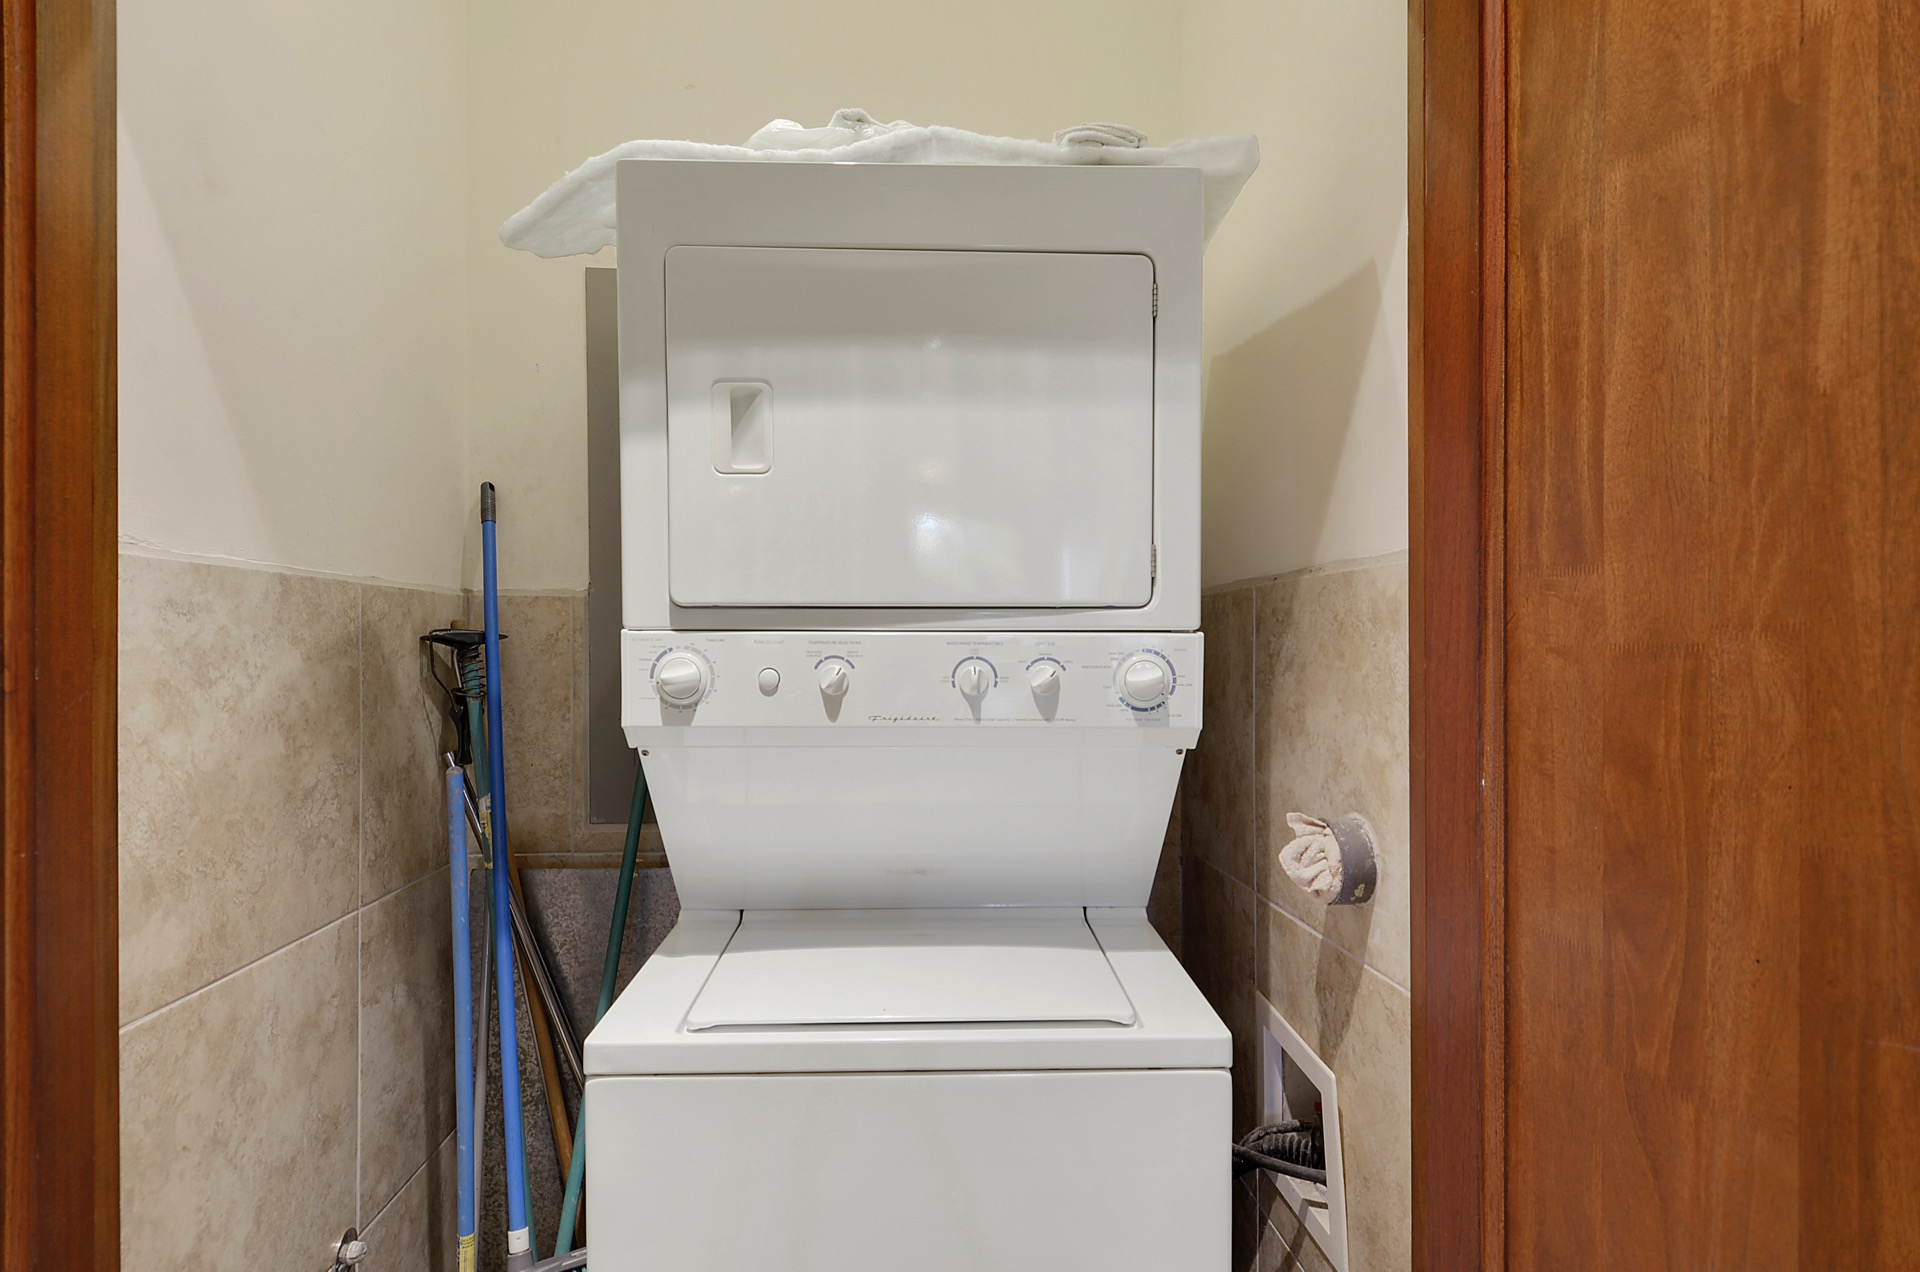 Washer and dryer if you need